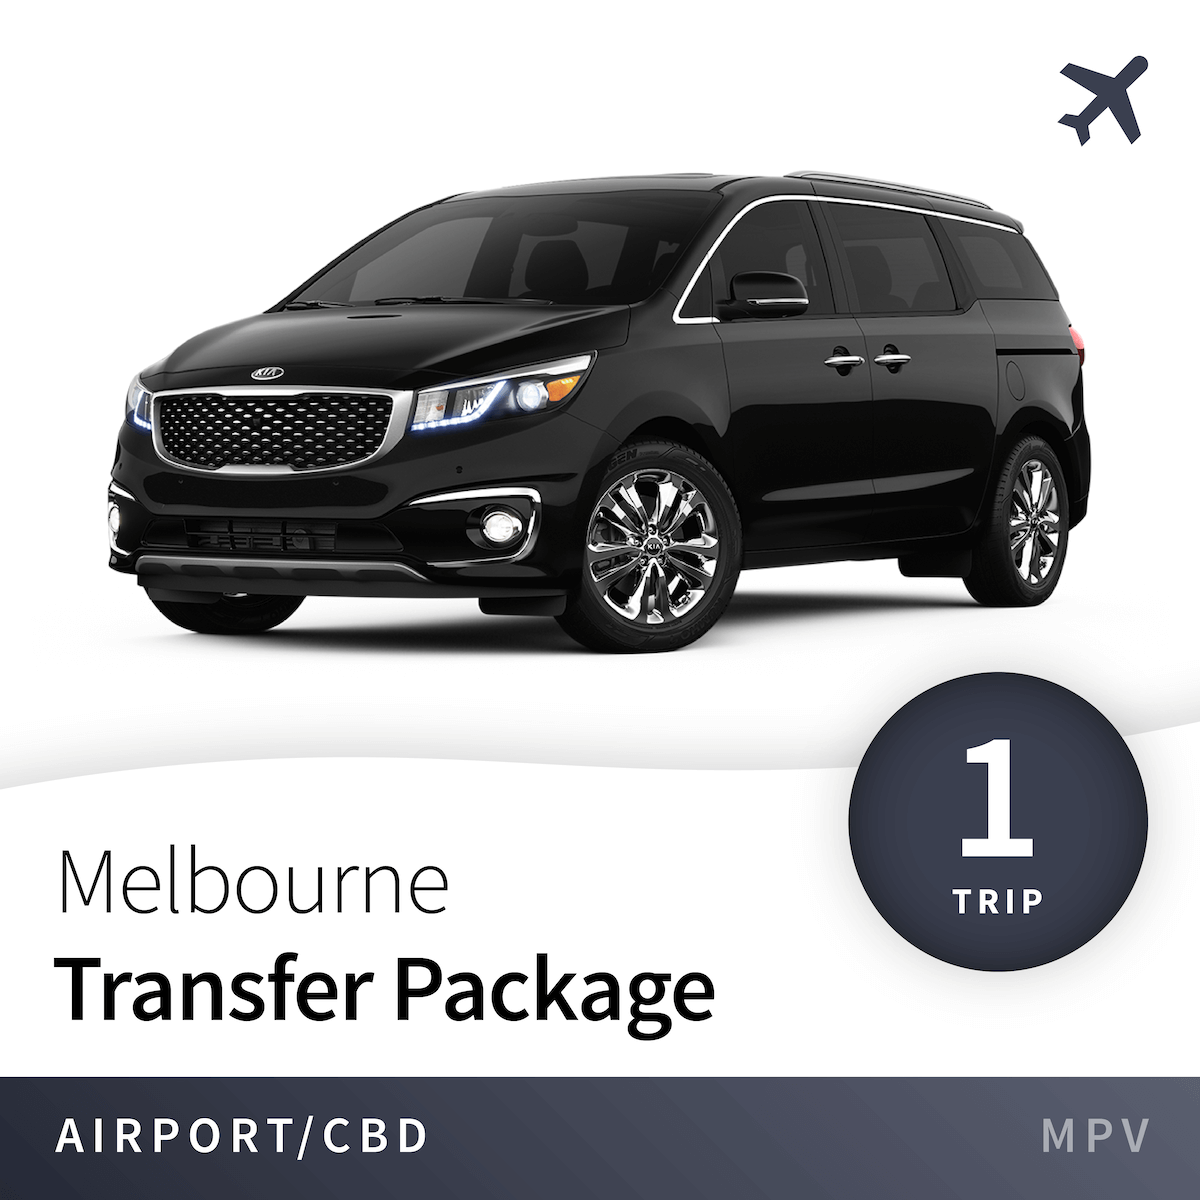 Melbourne Airport Transfer Package - MPV (1 Trip) 9